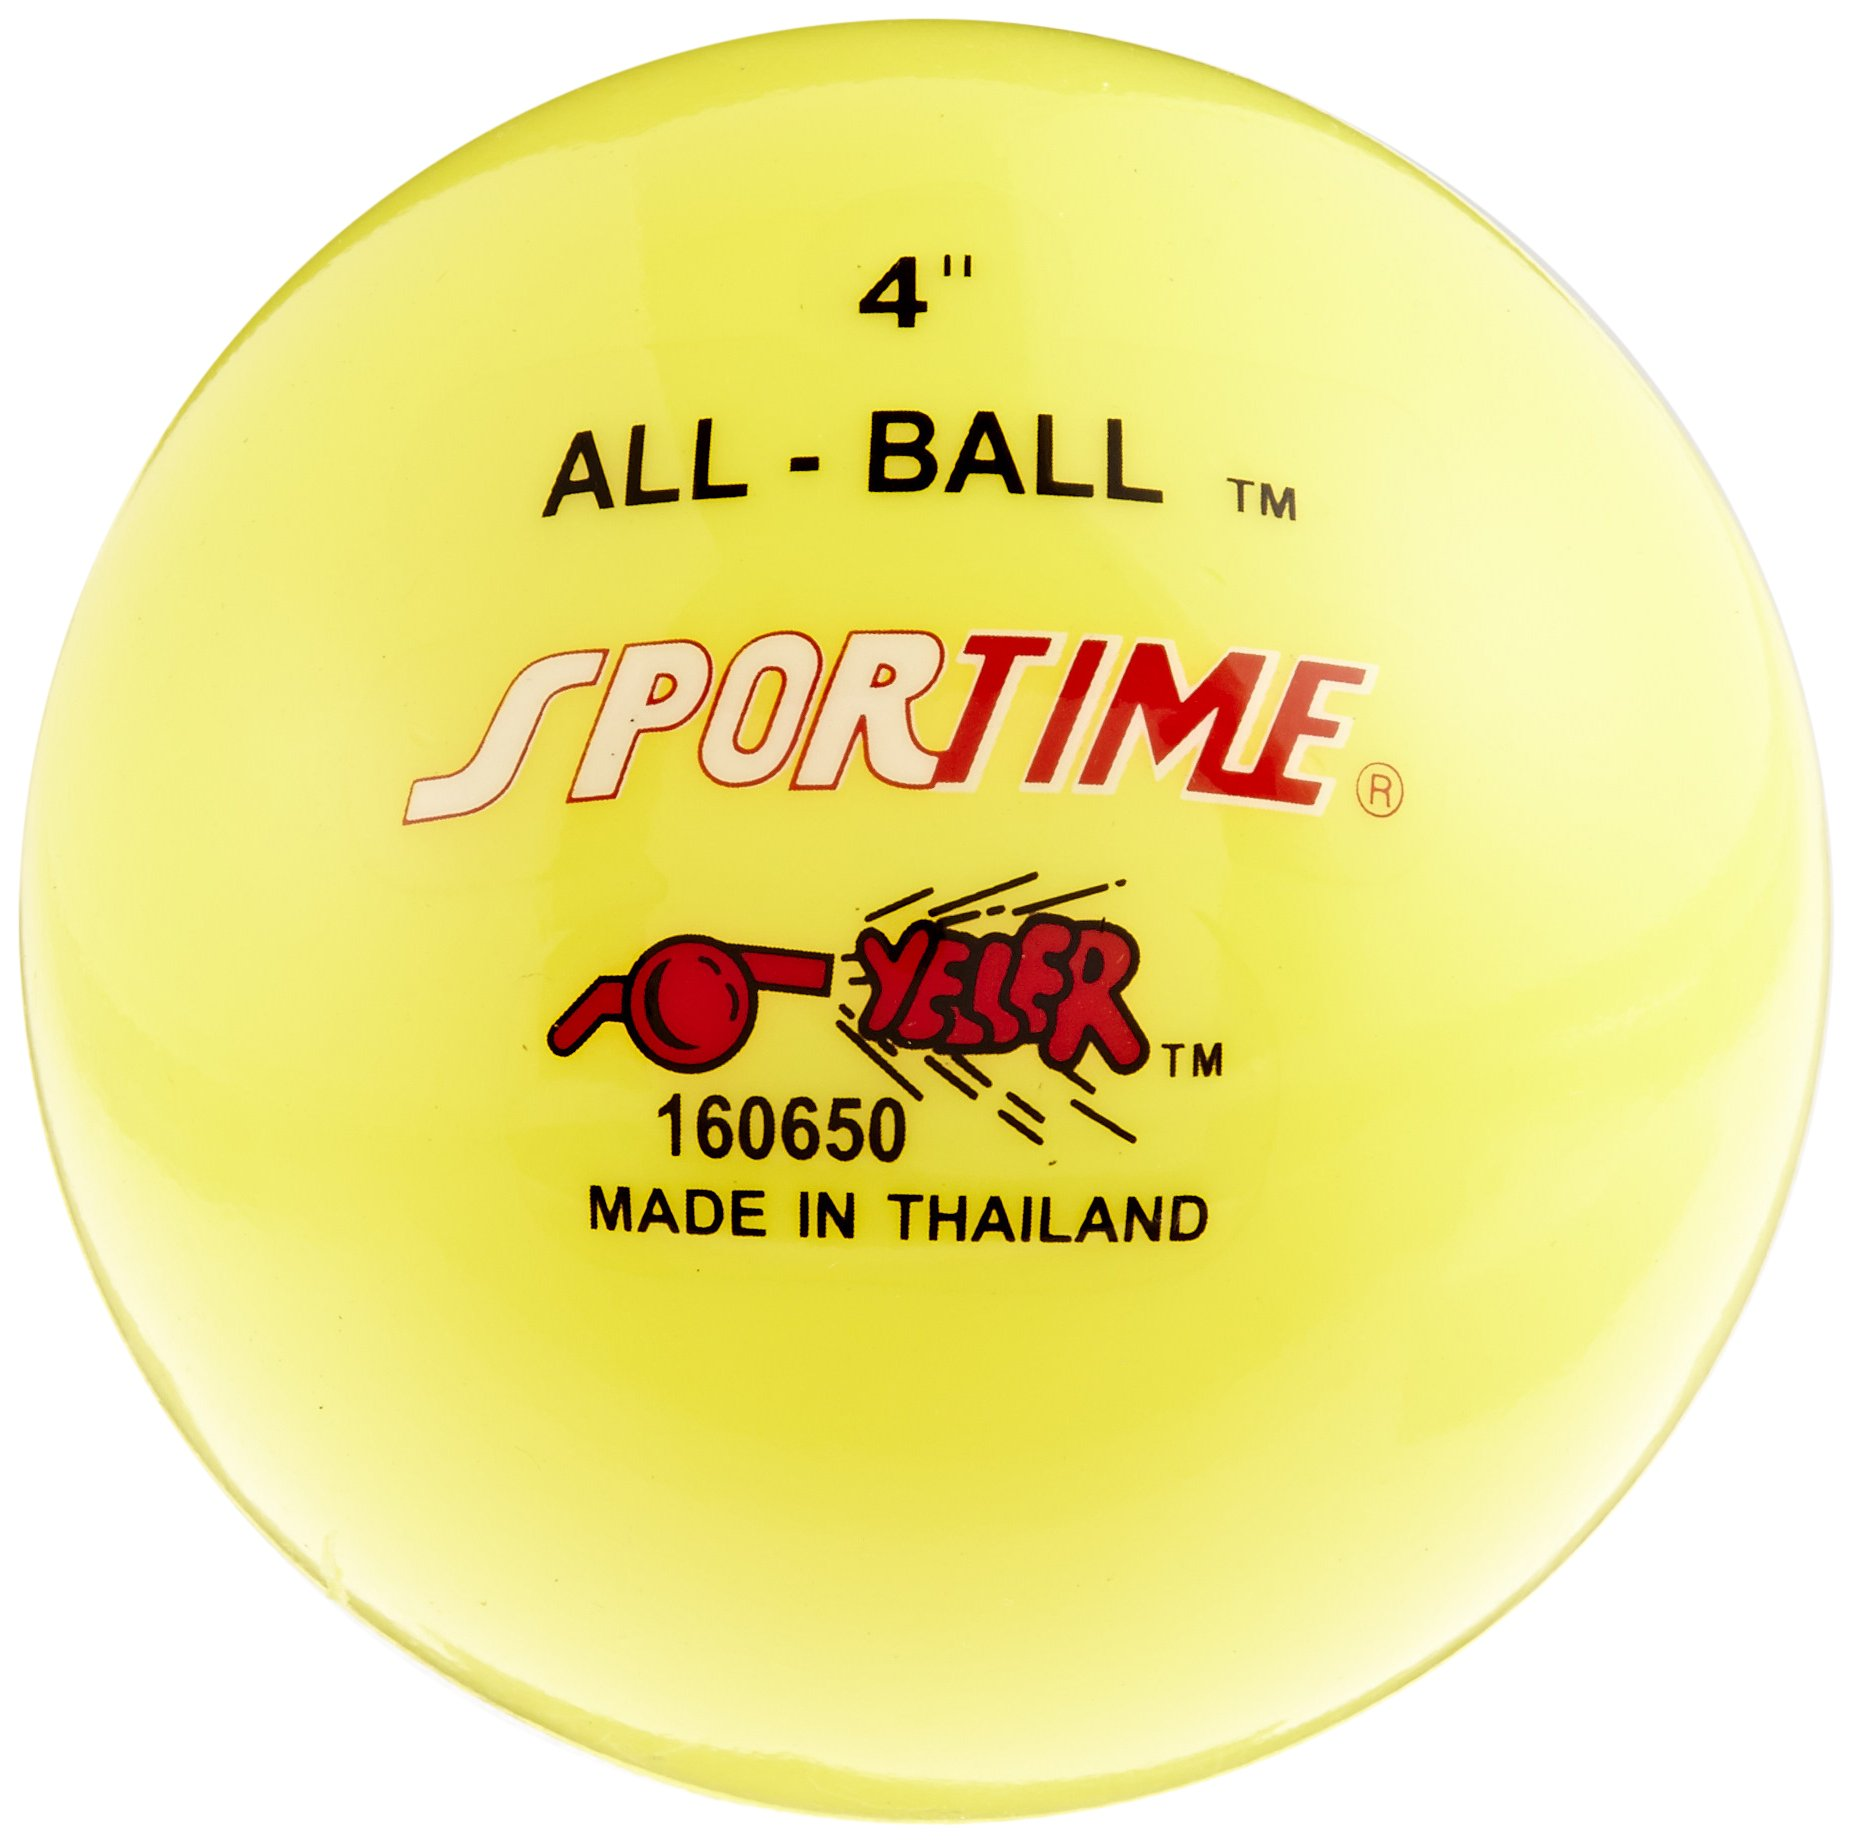 Sportime Multi-Purpose Inflatable Balls, 4 Inches, Yellow, Pack of 12 by Sportime